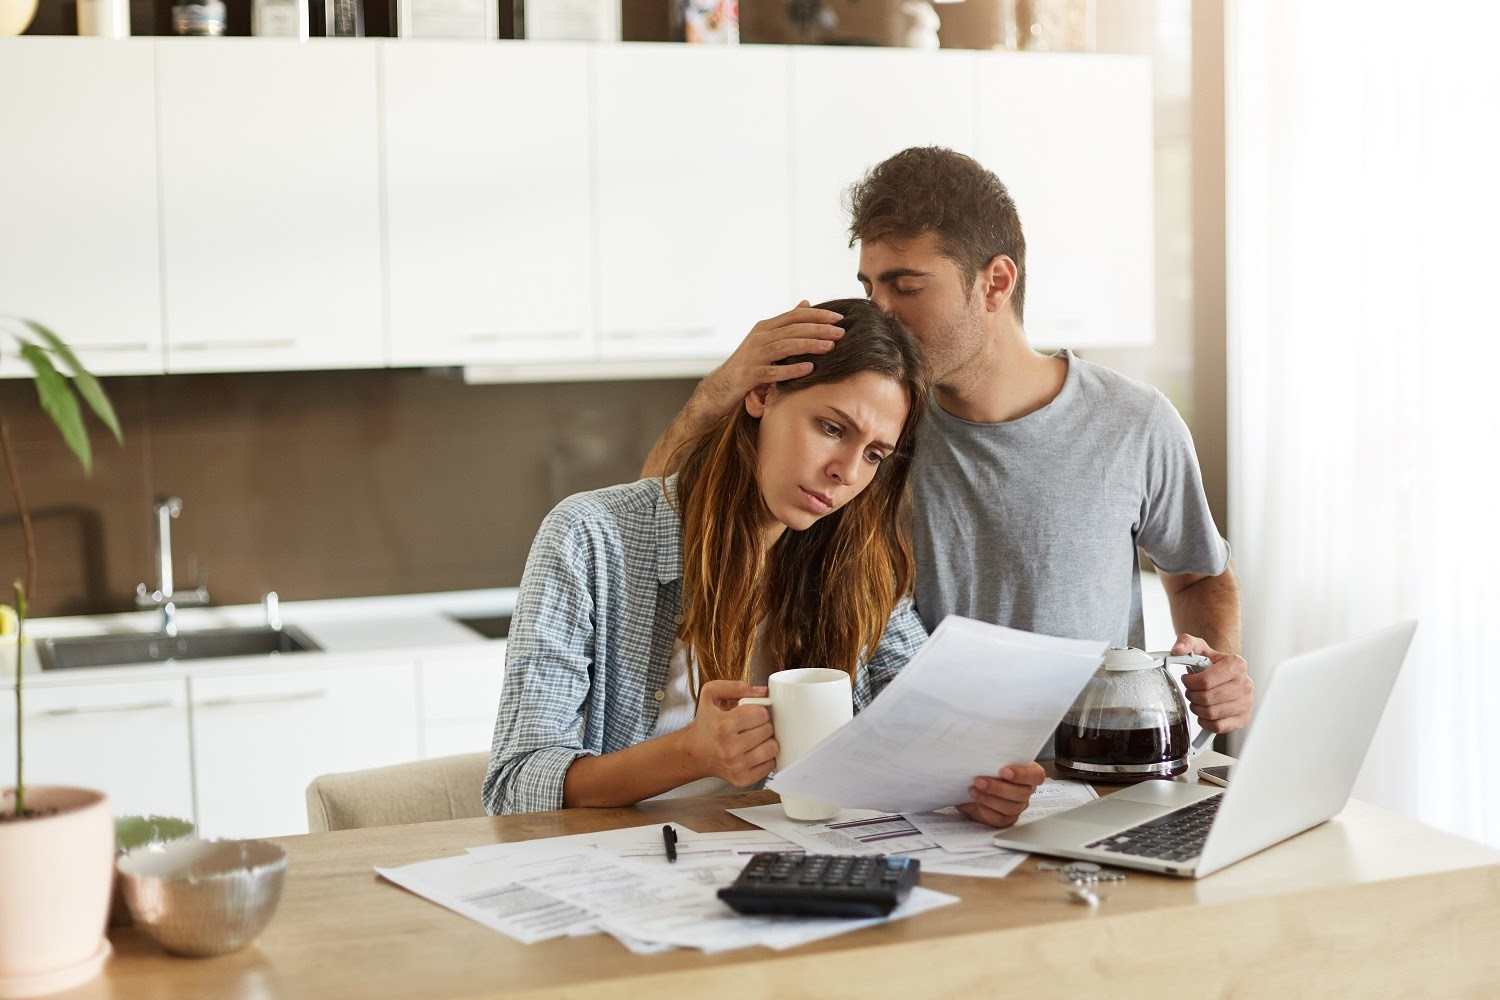 A husband comforts his worried wife while looking over their bills